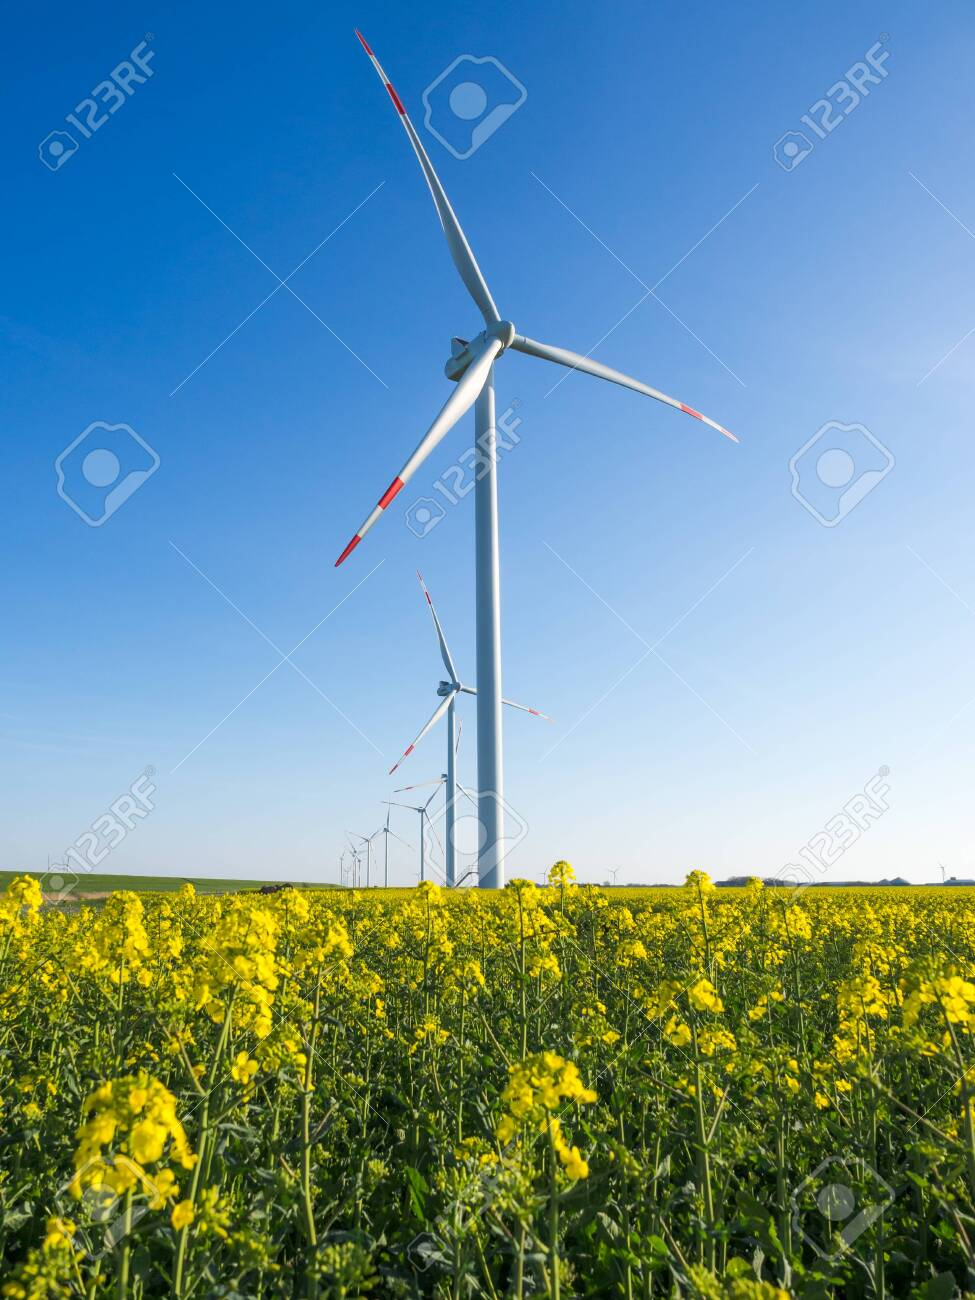 Wind turbines or windmills creating electricity out of wind energy on yellow rape or canola field, Nordfriesland, Germany. - 136808534